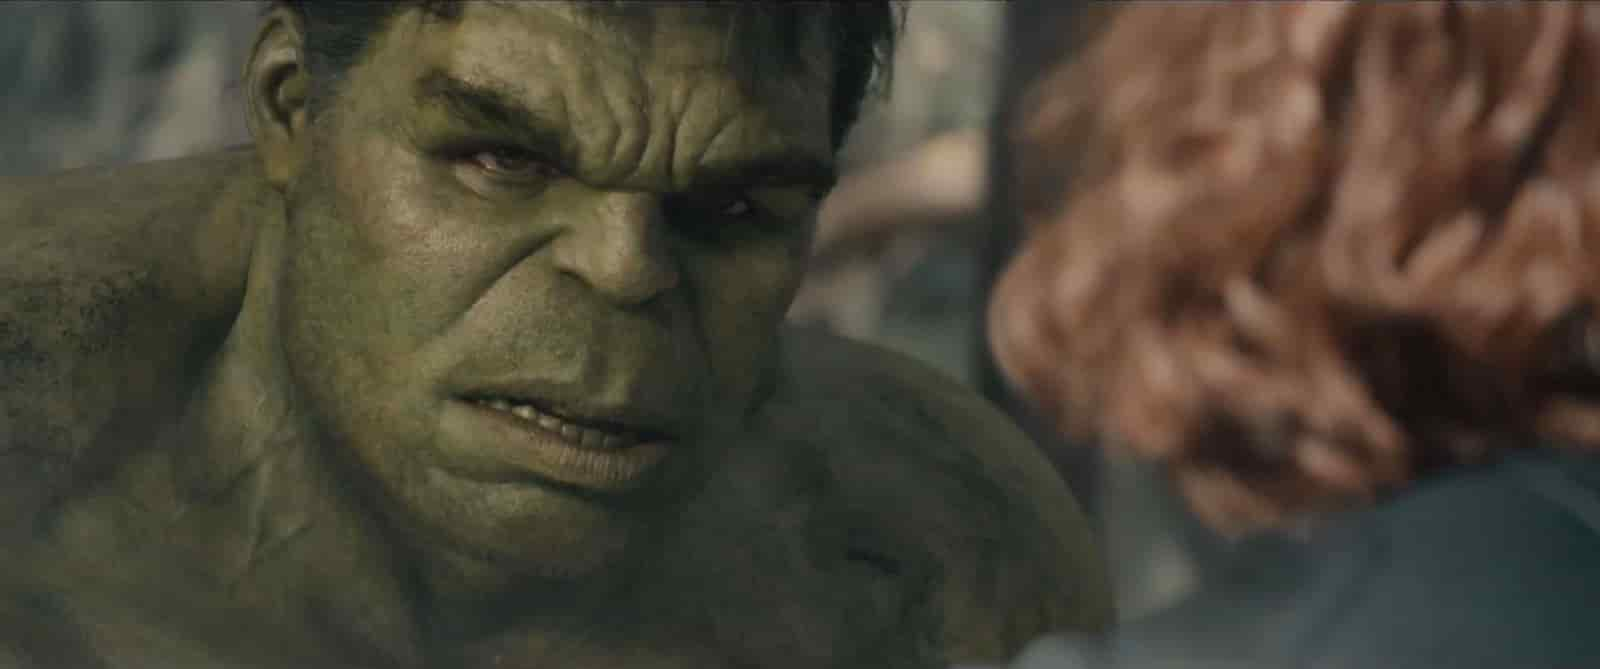 Over the Shoulder Shot - Camera Angles - The Hulk OTS